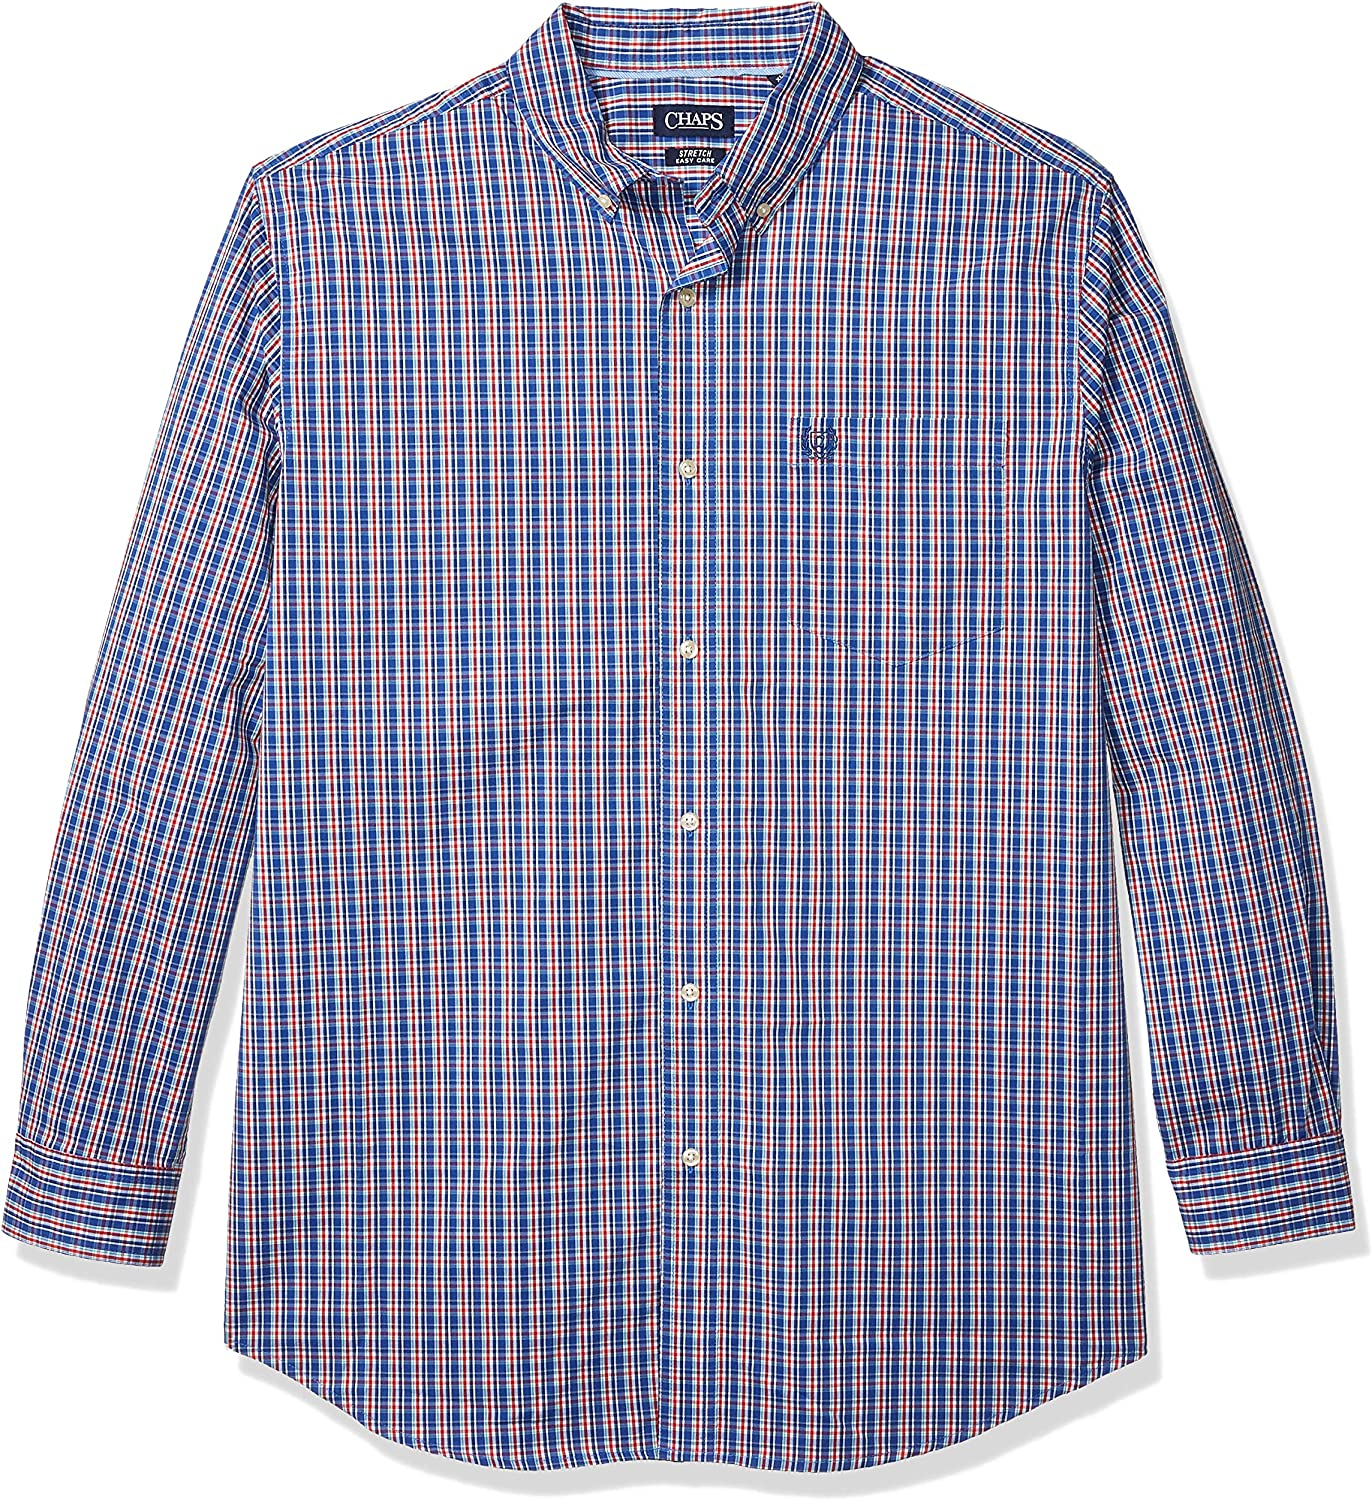 Chaps Men's Big and Tall Classic Fit Long Sleeve Stretch Easy Care Shirt